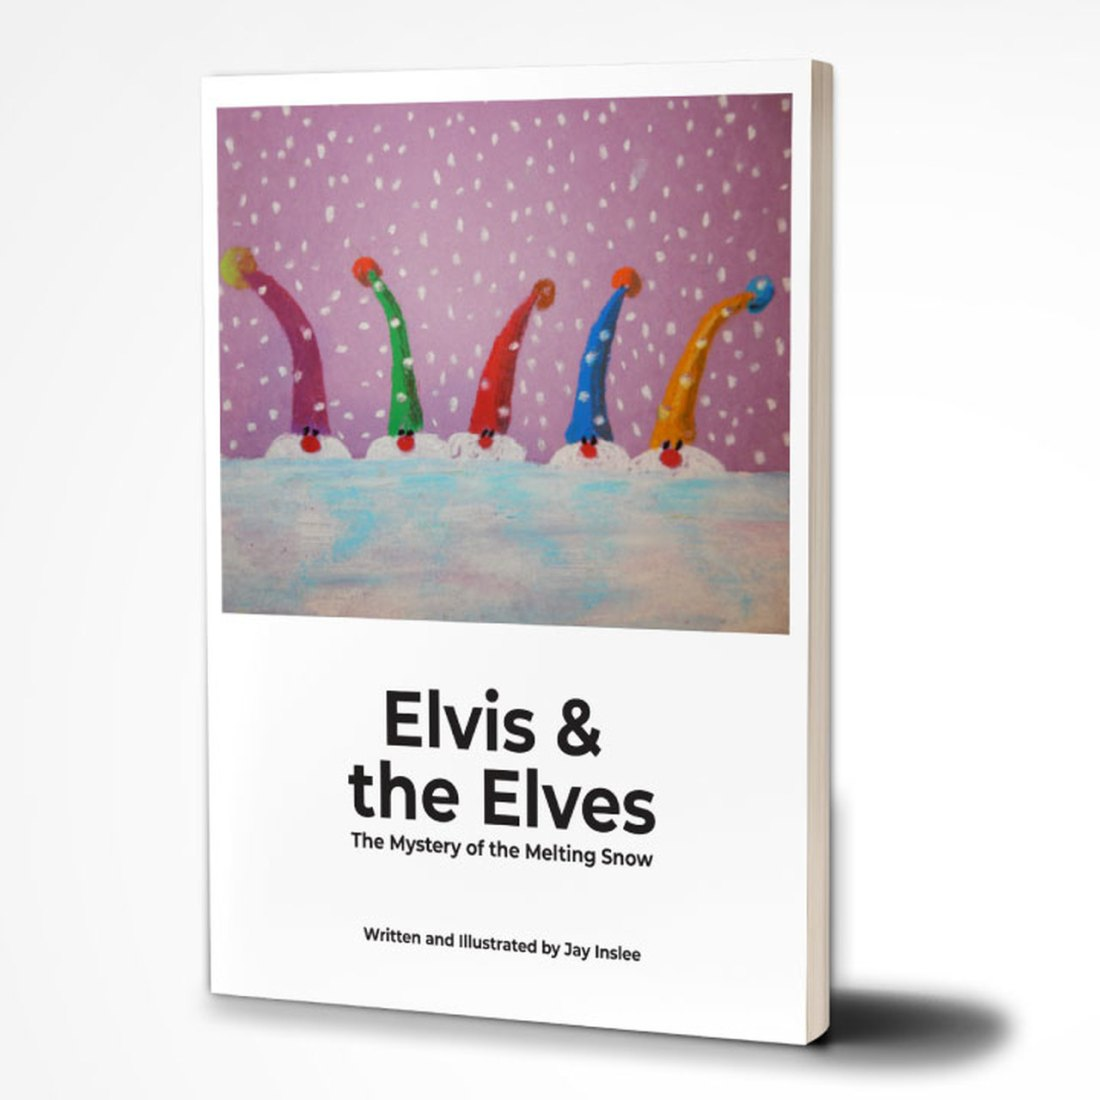 """""""Elvis & the Elves: The Mystery of the Melting Snow"""" By Jay Inslee (jayinslee.com)"""